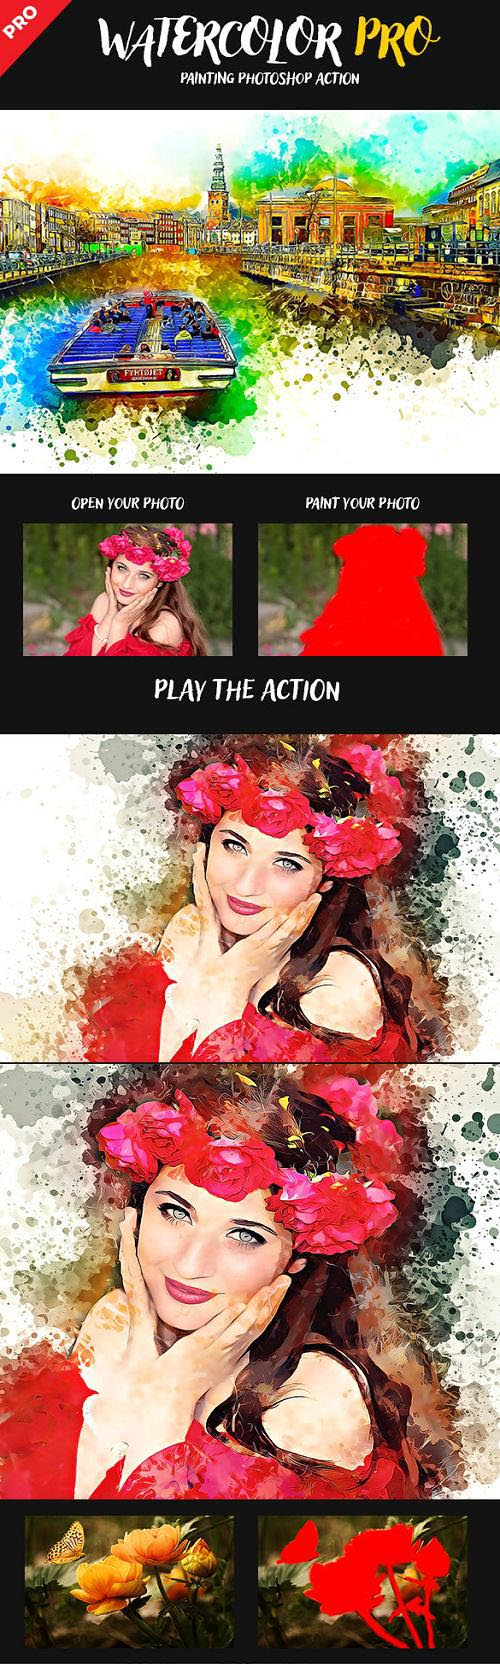 Watercolor Pro Painting Photoshop Action 22840711